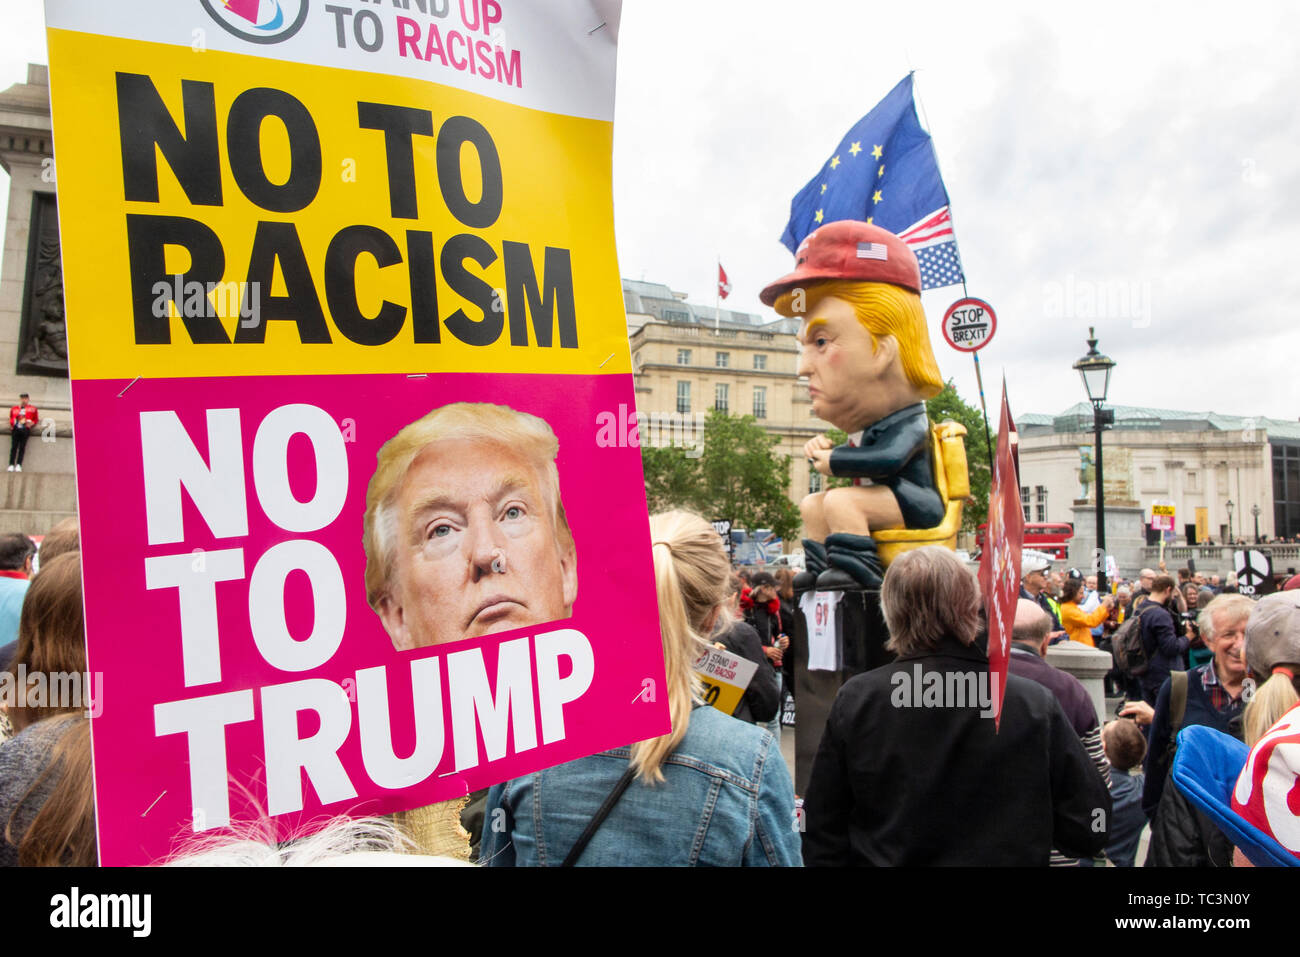 Anti Racism posters at Trafalgar Square during demonstrations against the state visit of Donald Trump - Stock Image